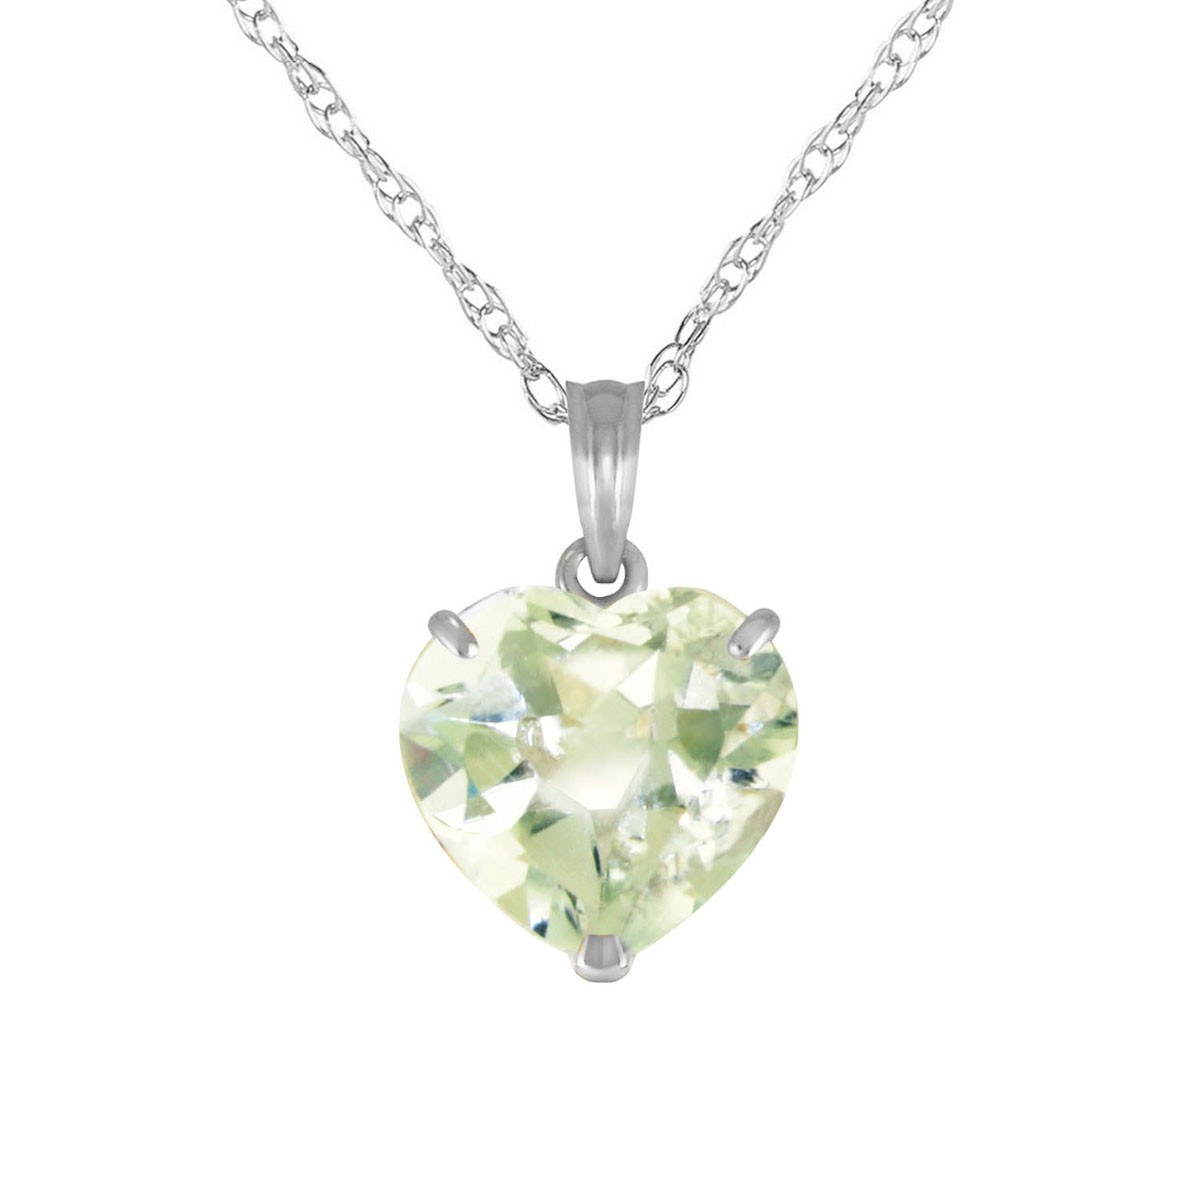 Green amethyst large heart pendant necklace 31 ct in 9ct white gold green amethyst large heart pendant necklace 31 ct in 9ct white gold mozeypictures Gallery